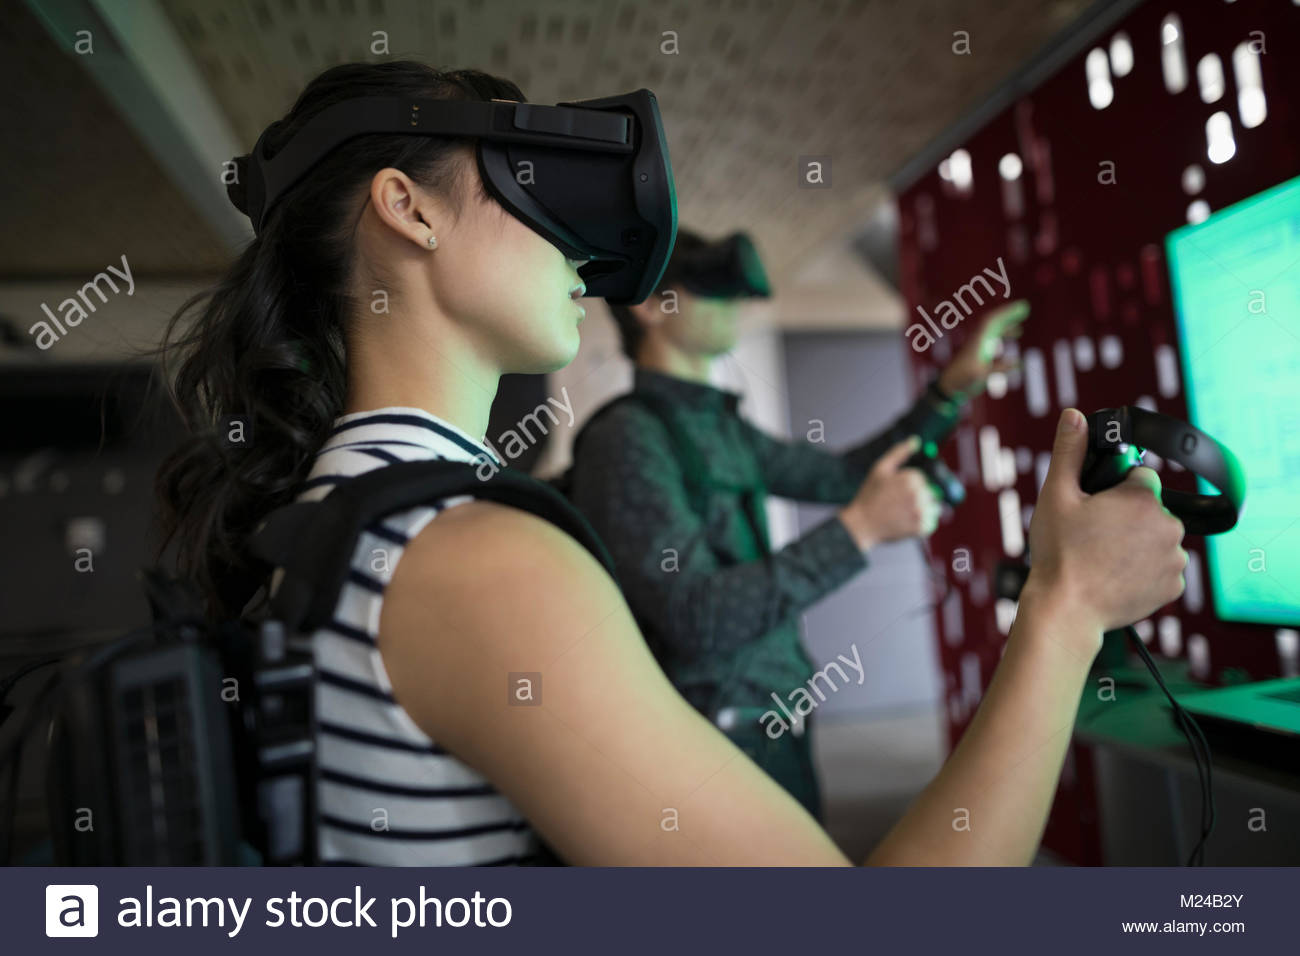 Computer programmers testing virtual reality simulator glasses and joysticks in office - Stock Image